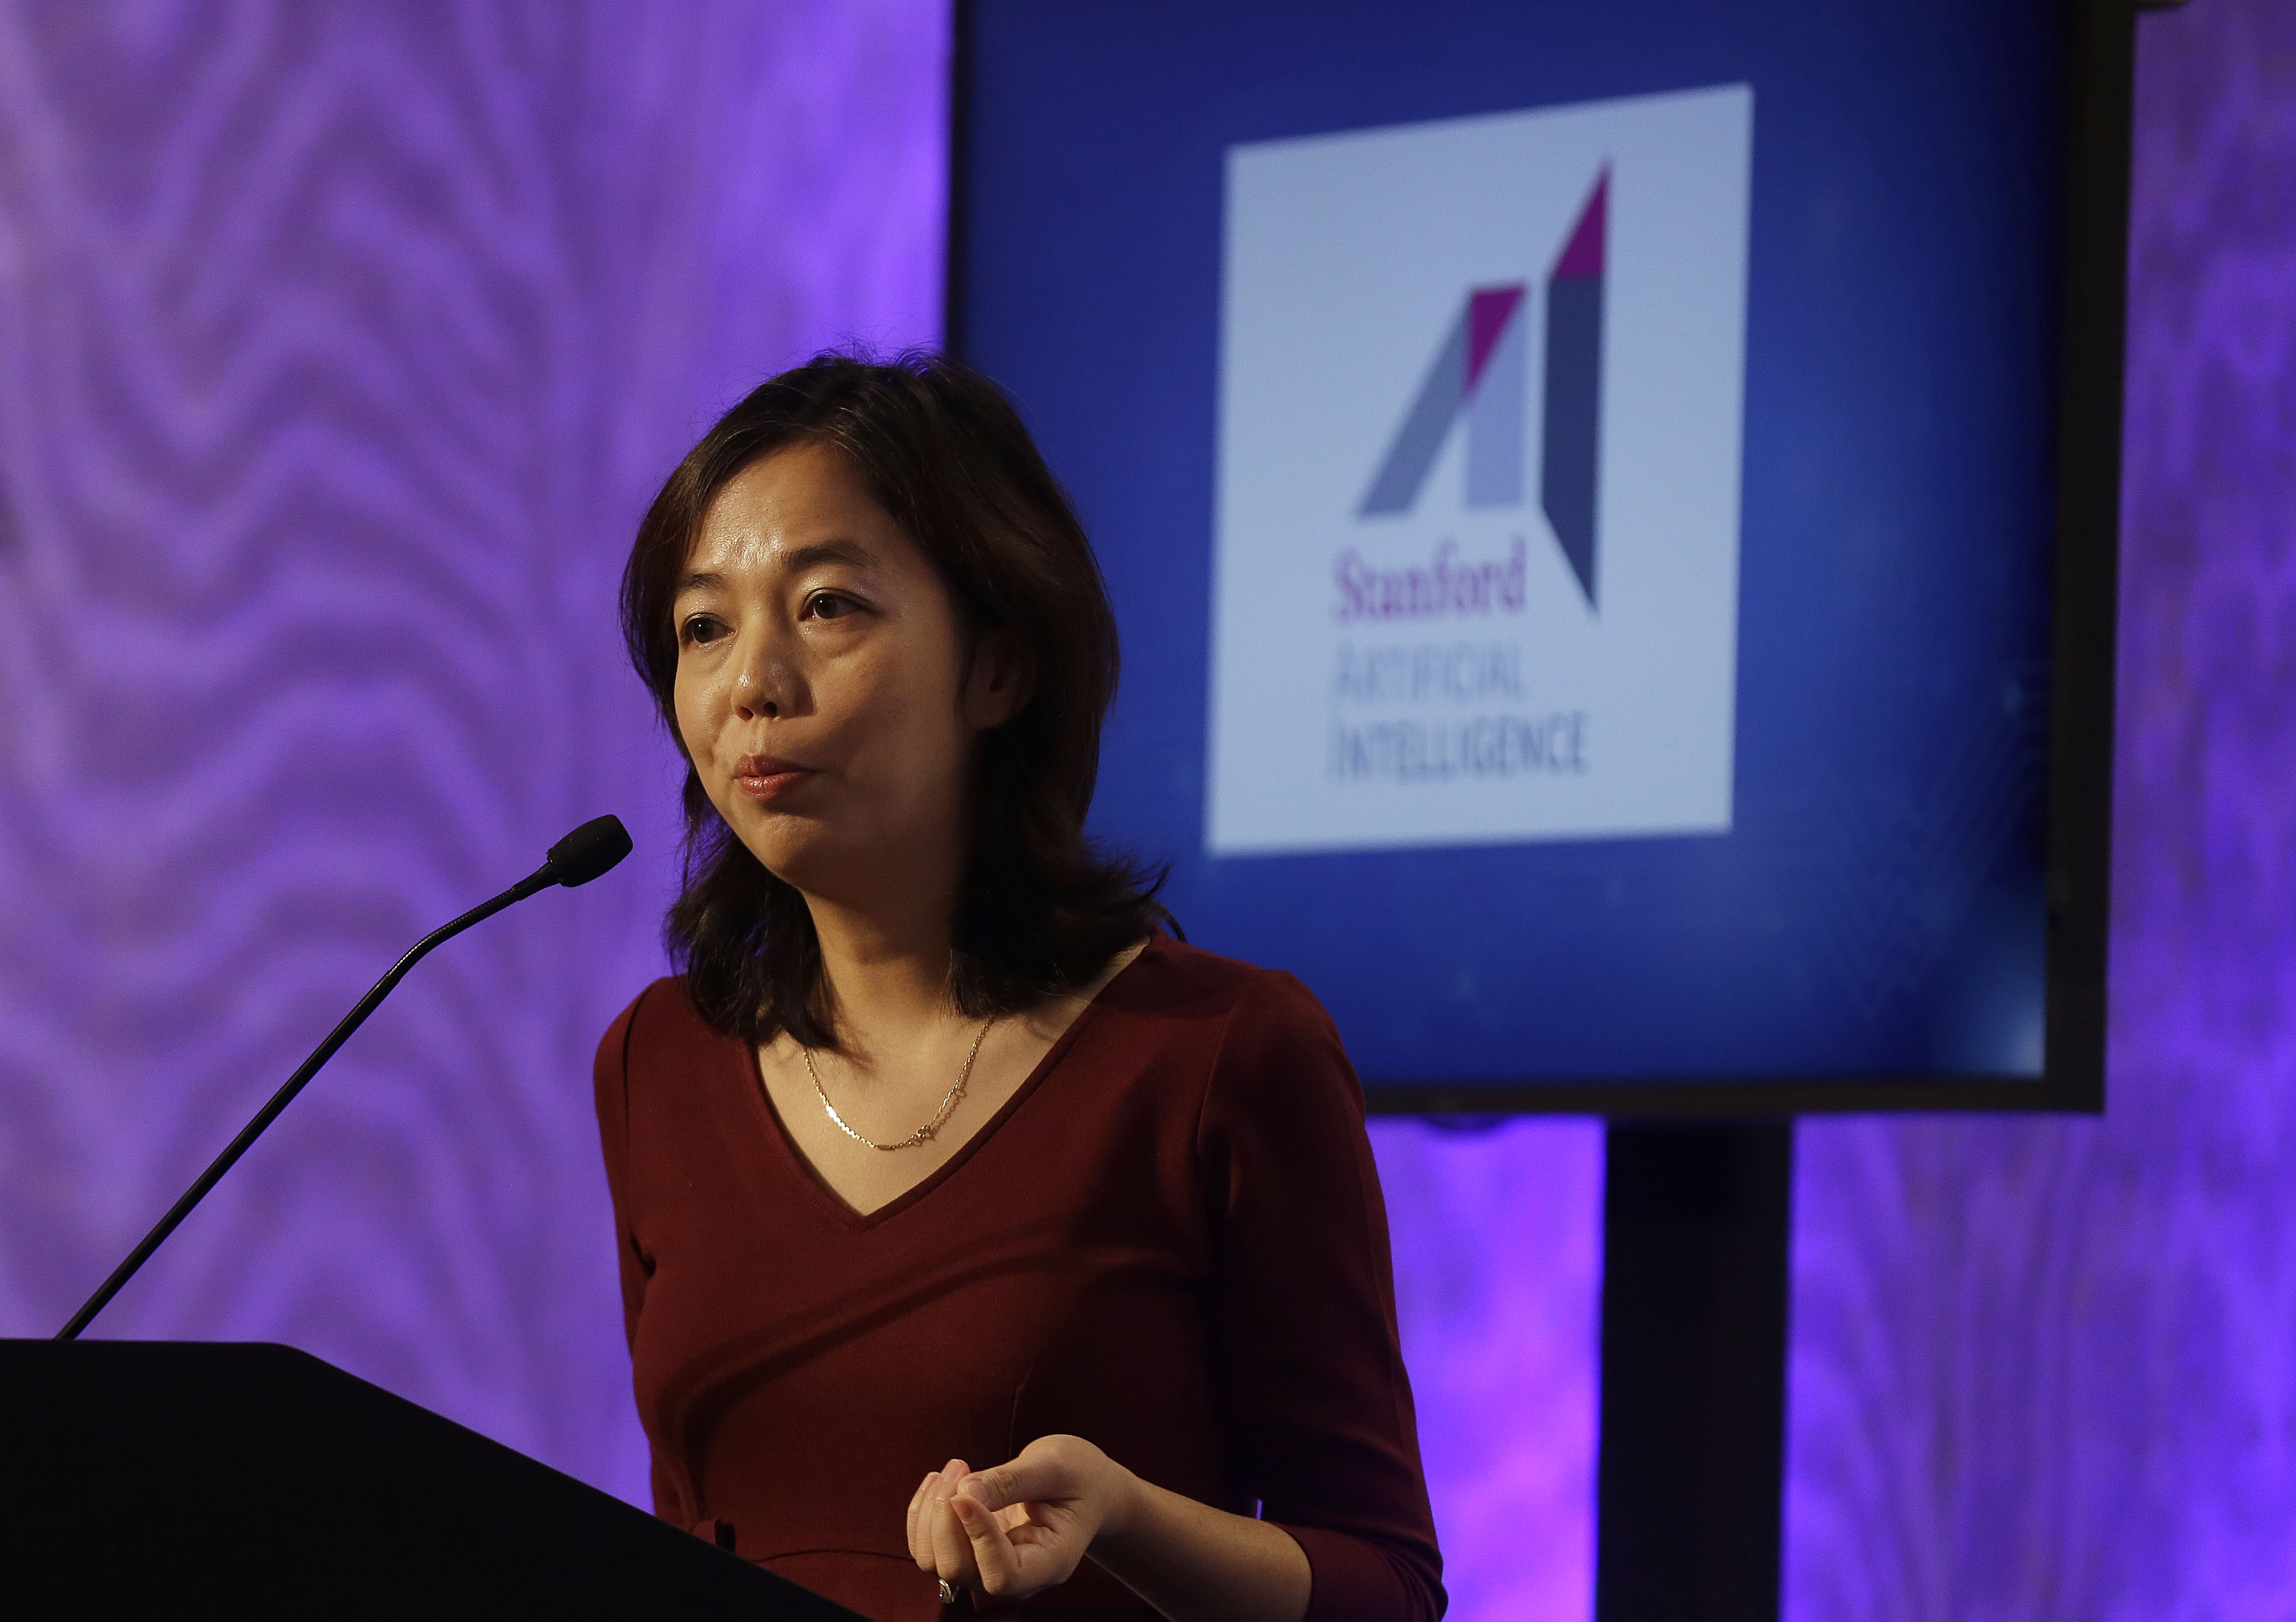 Fei-Fei Li, associate professor at Stanford, speaks at a news conference in East Palo Alto, Calif., Friday, Sept. 4, 2015. Toyota announced it is investing $50 million with Stanford University and the Massachusetts Institute of Technology in hopes of gaining an edge in an accelerating race to phase out human drivers. (AP Photo/Jeff Chiu)